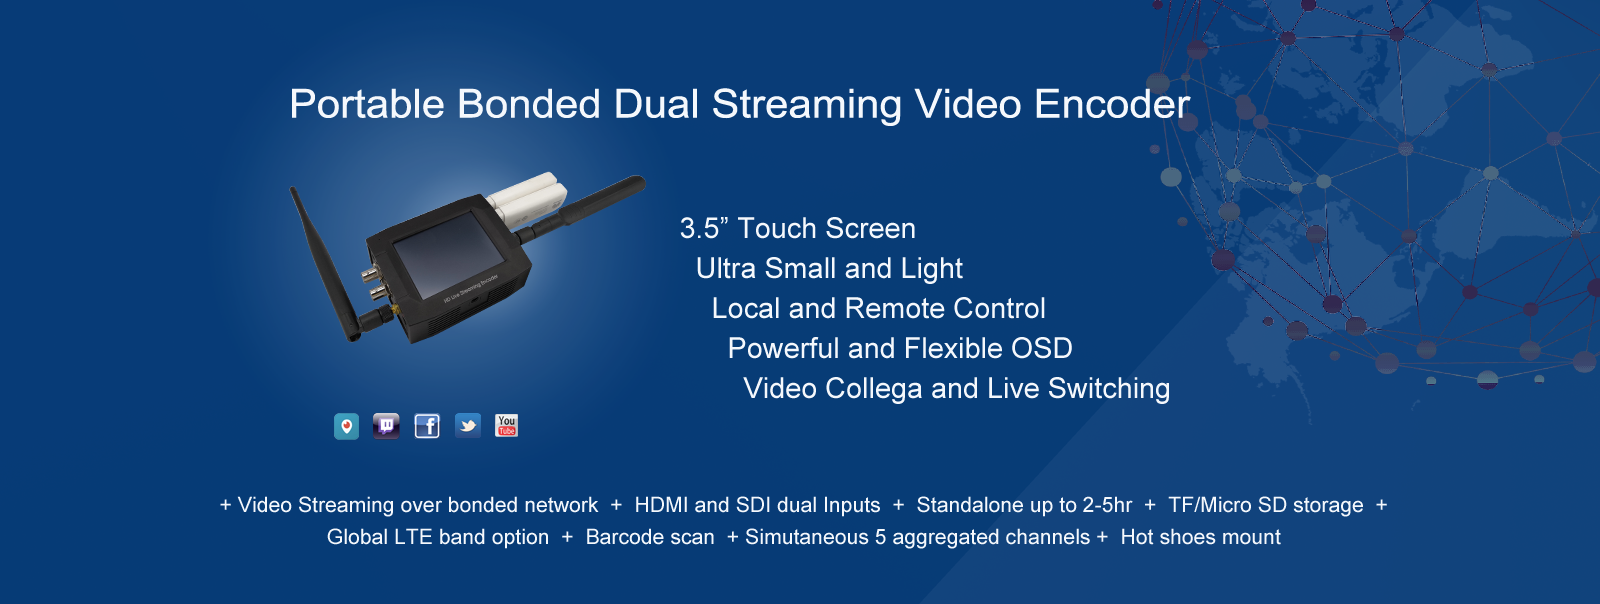 bonded streaming encoder 1600